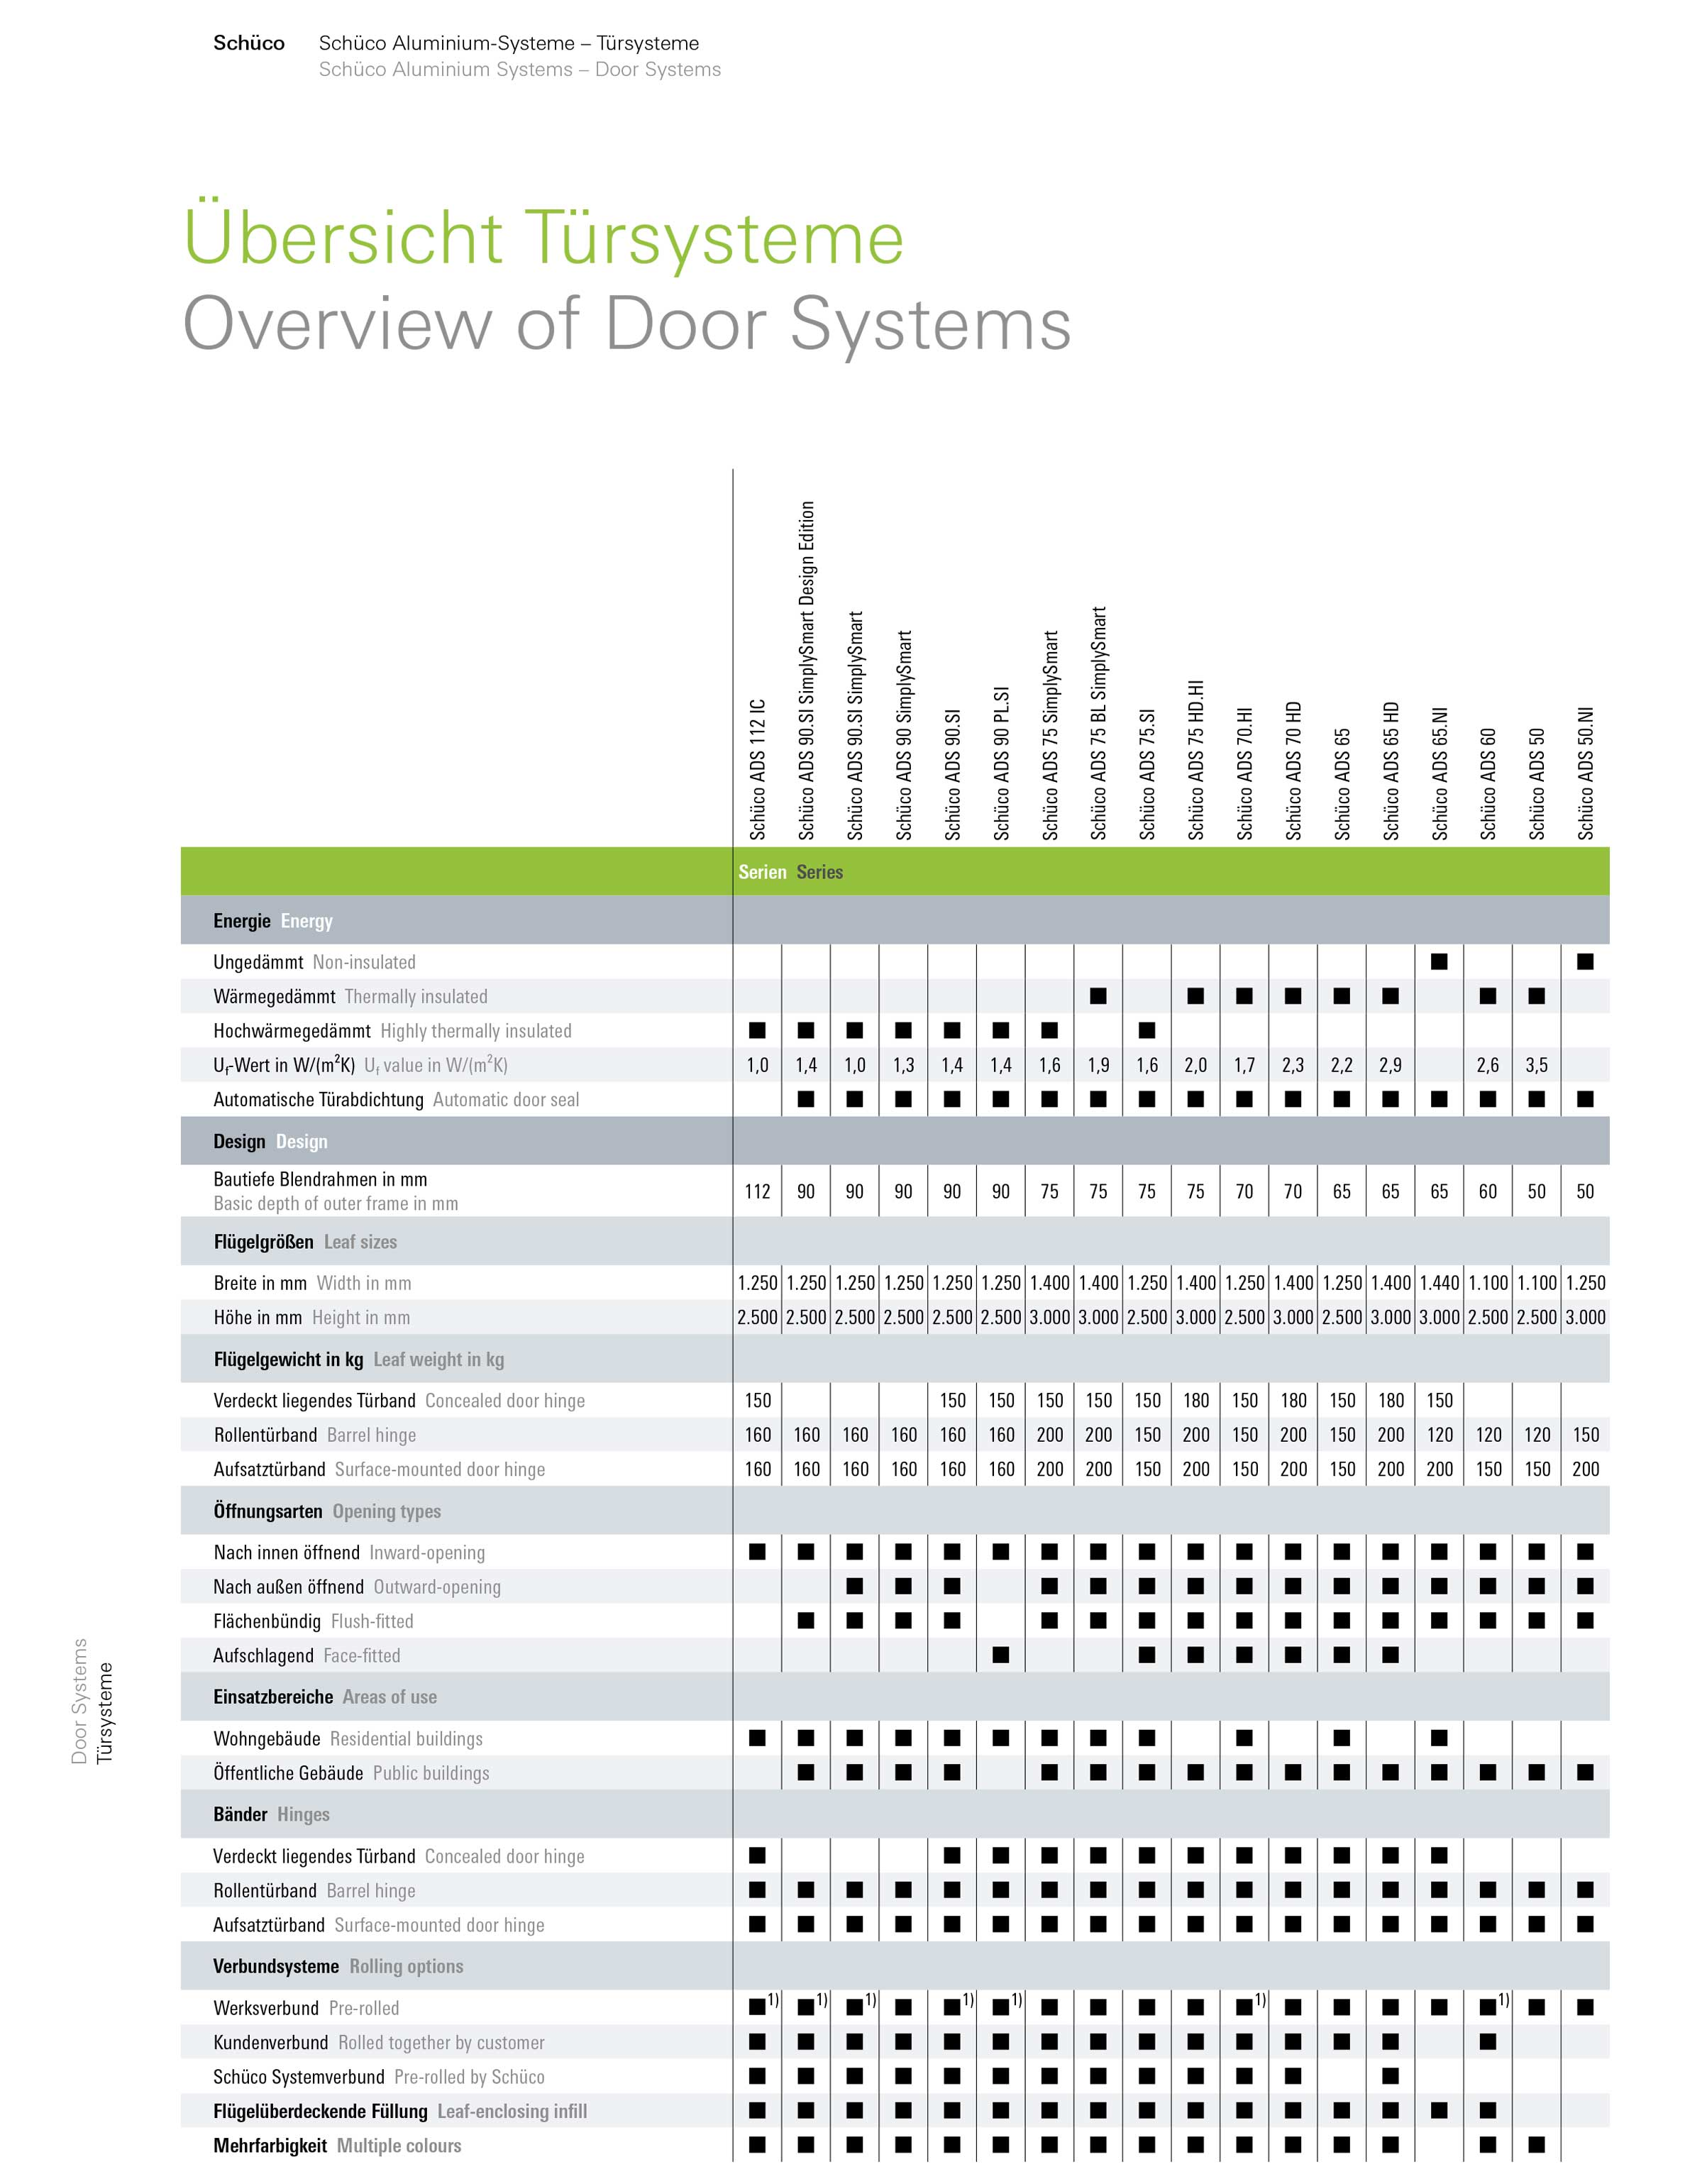 Overview of Door Systems